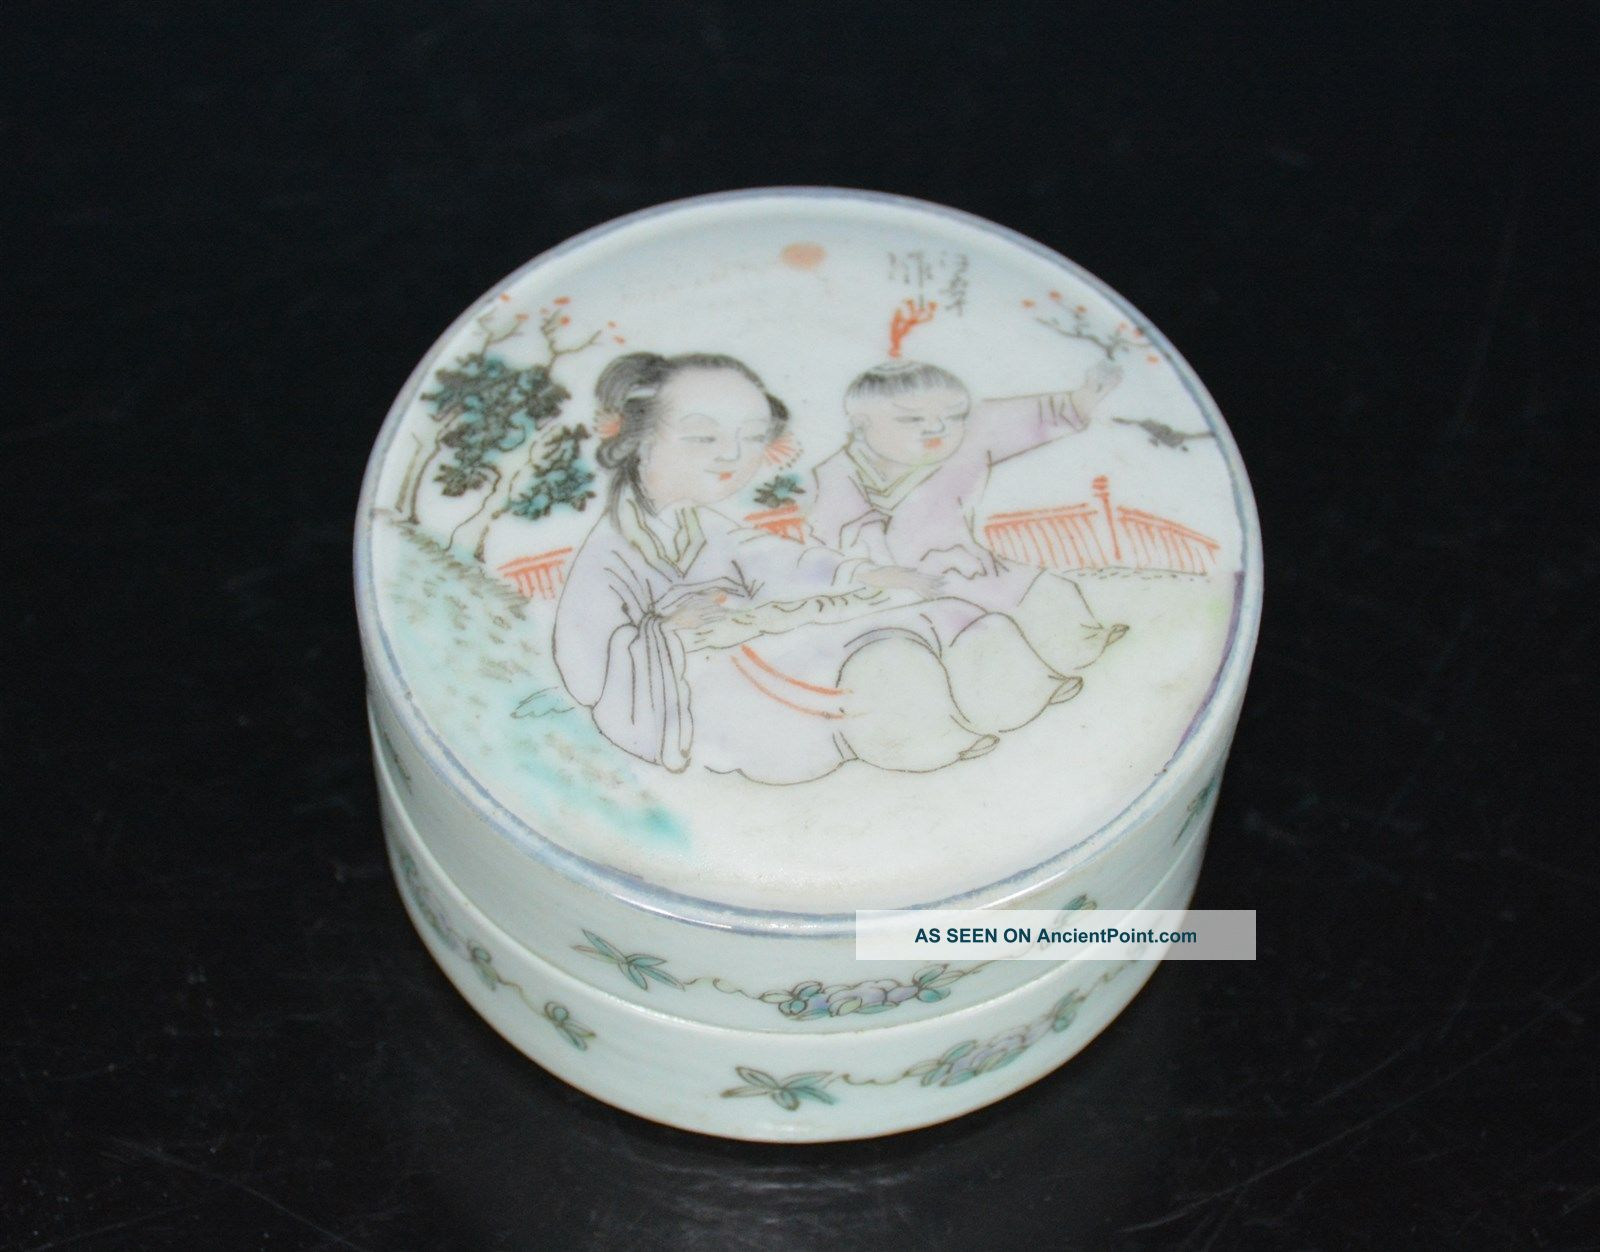 Exquisite Antique Chinese Famille Rose Porcelain Box Marked I2682 Boxes photo